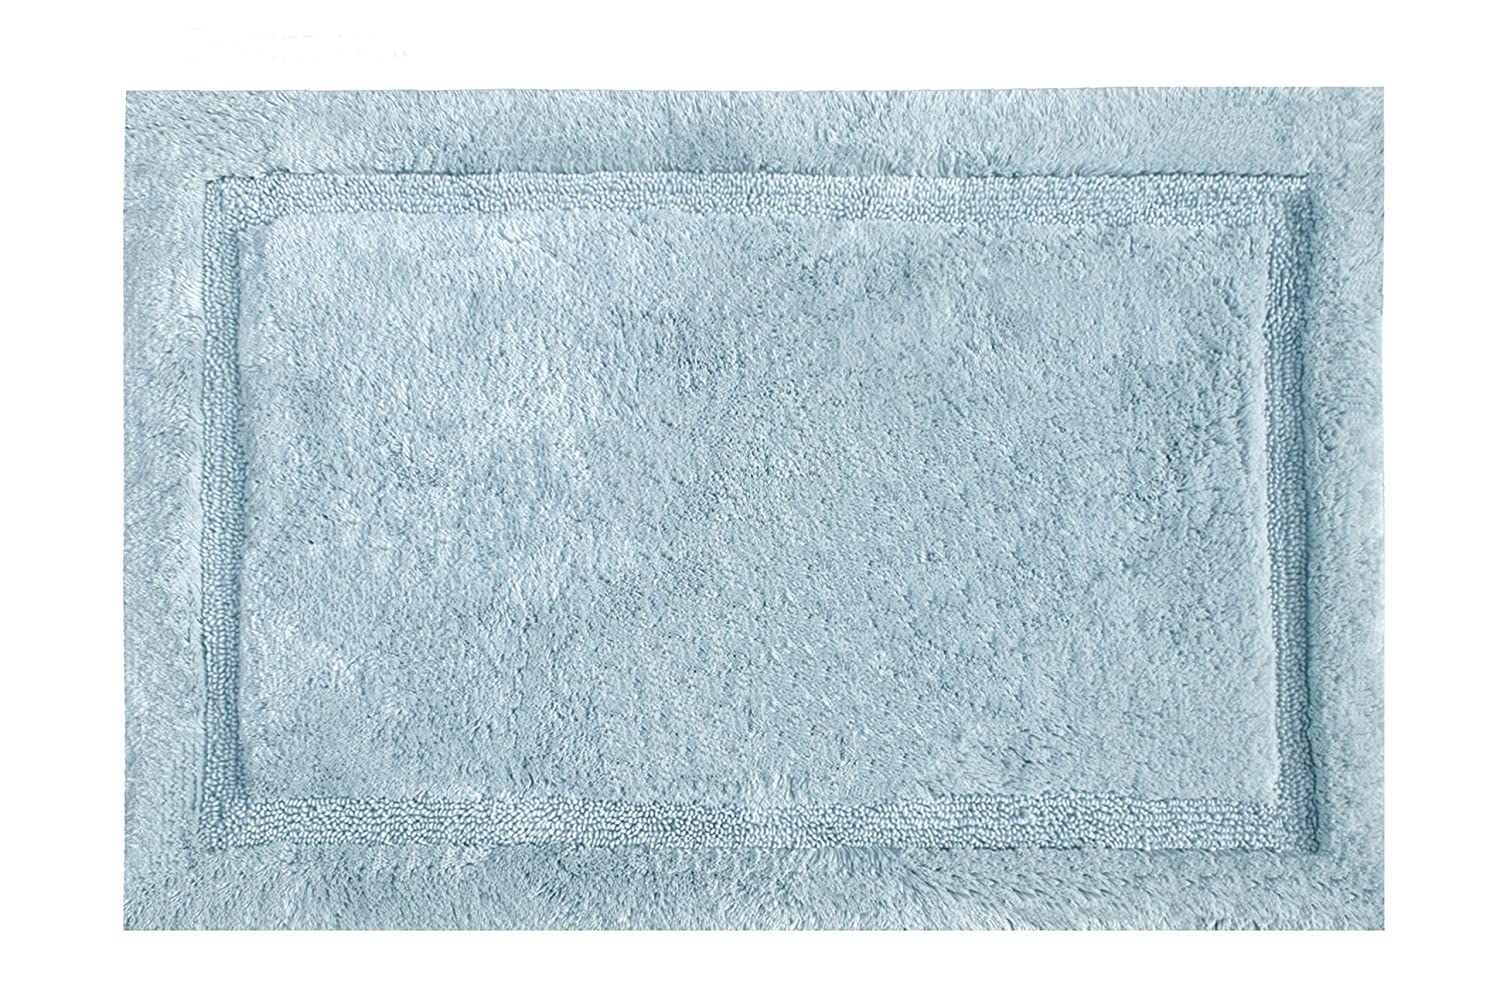 Grund Asheville Series 100/% Organic Cotton Bath Rug 21-Inch by 34-Inch White B2662-1267032